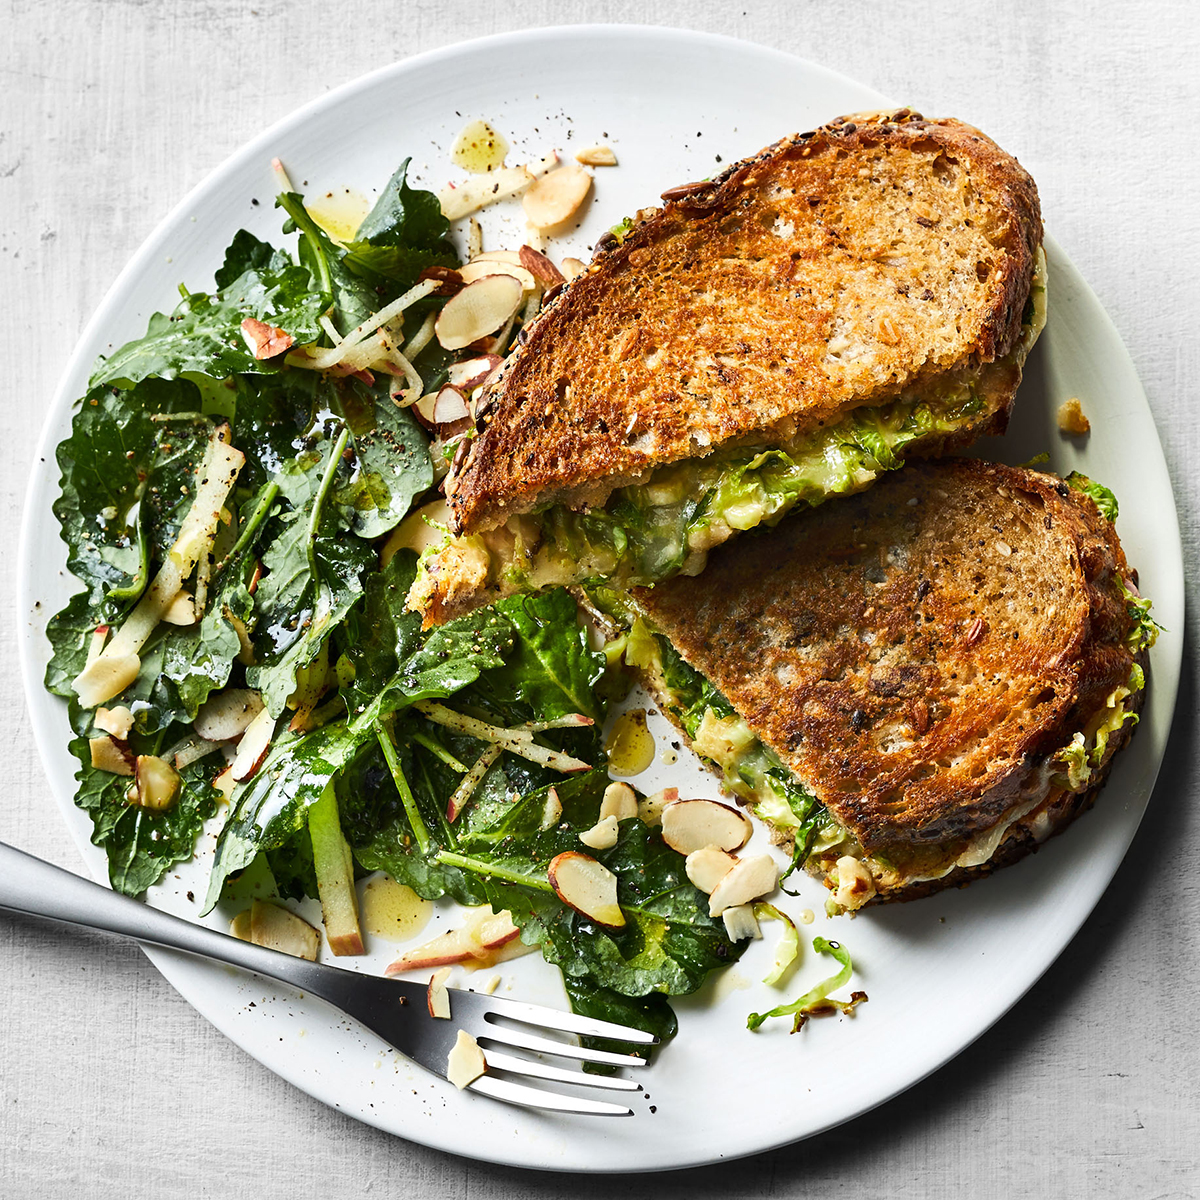 Brussels Sprouts Grilled Cheese with Baby Kale Salad